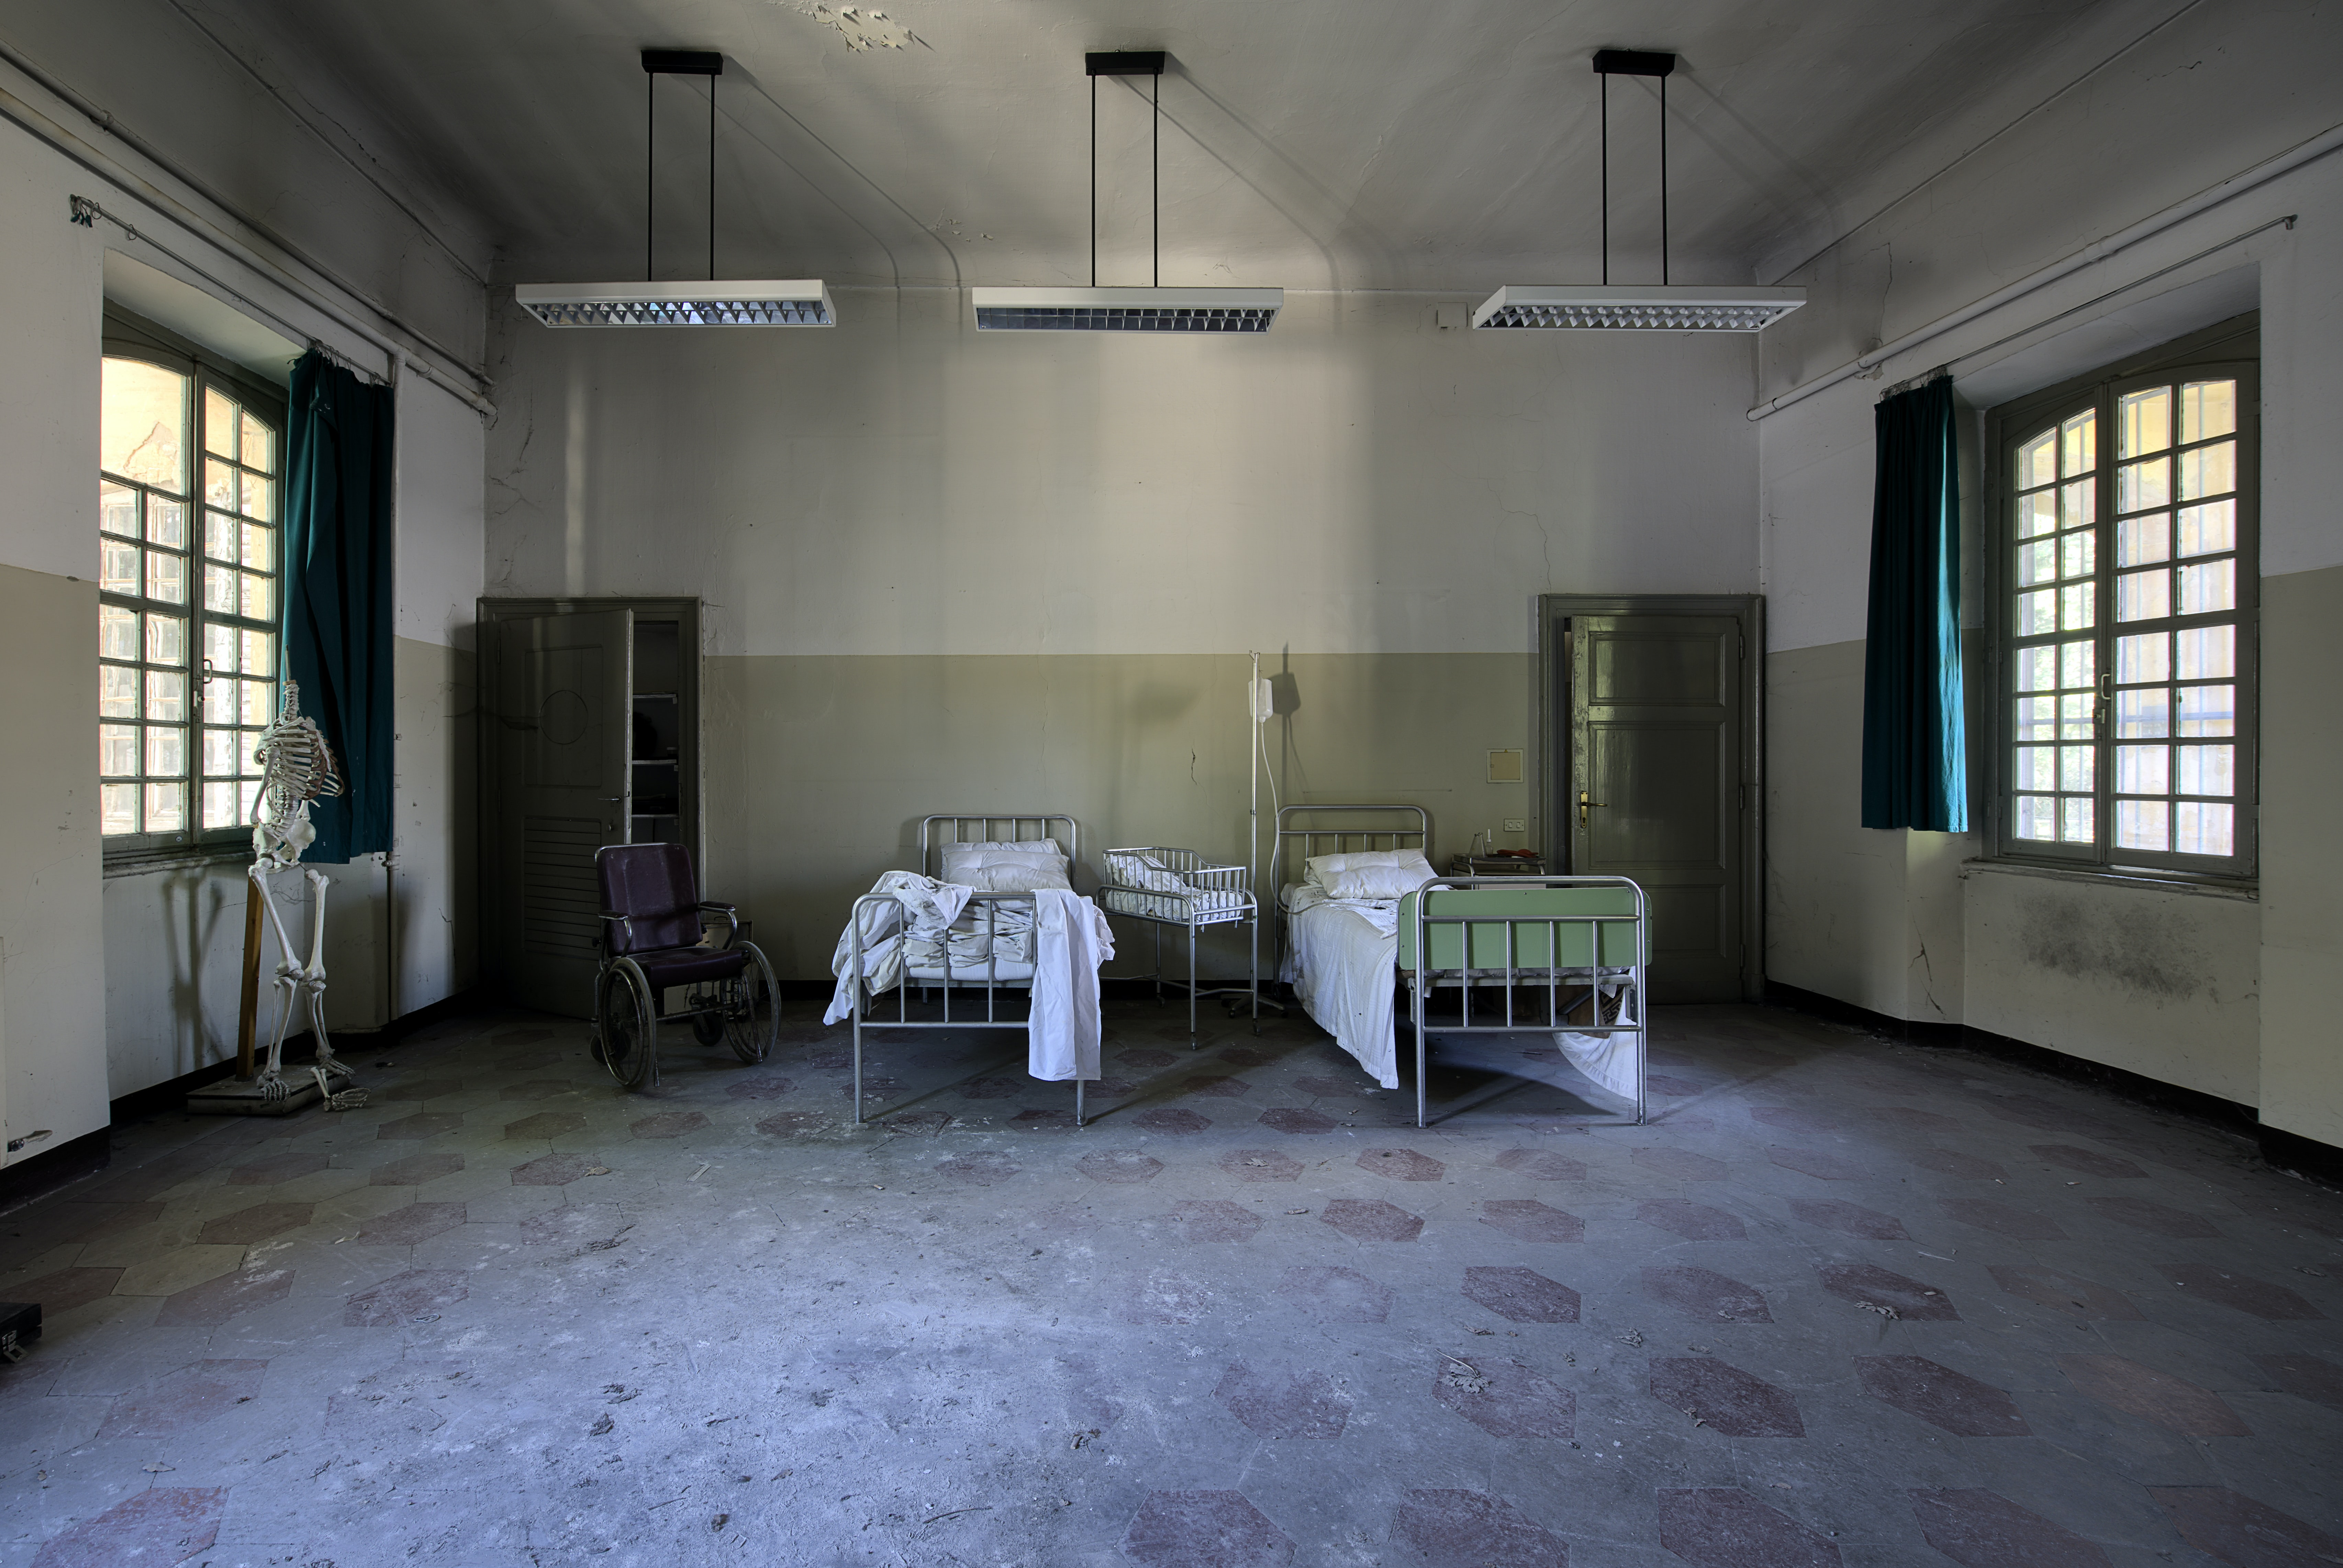 Two clinic beds in the middle of a ward room with windows on opposite walls